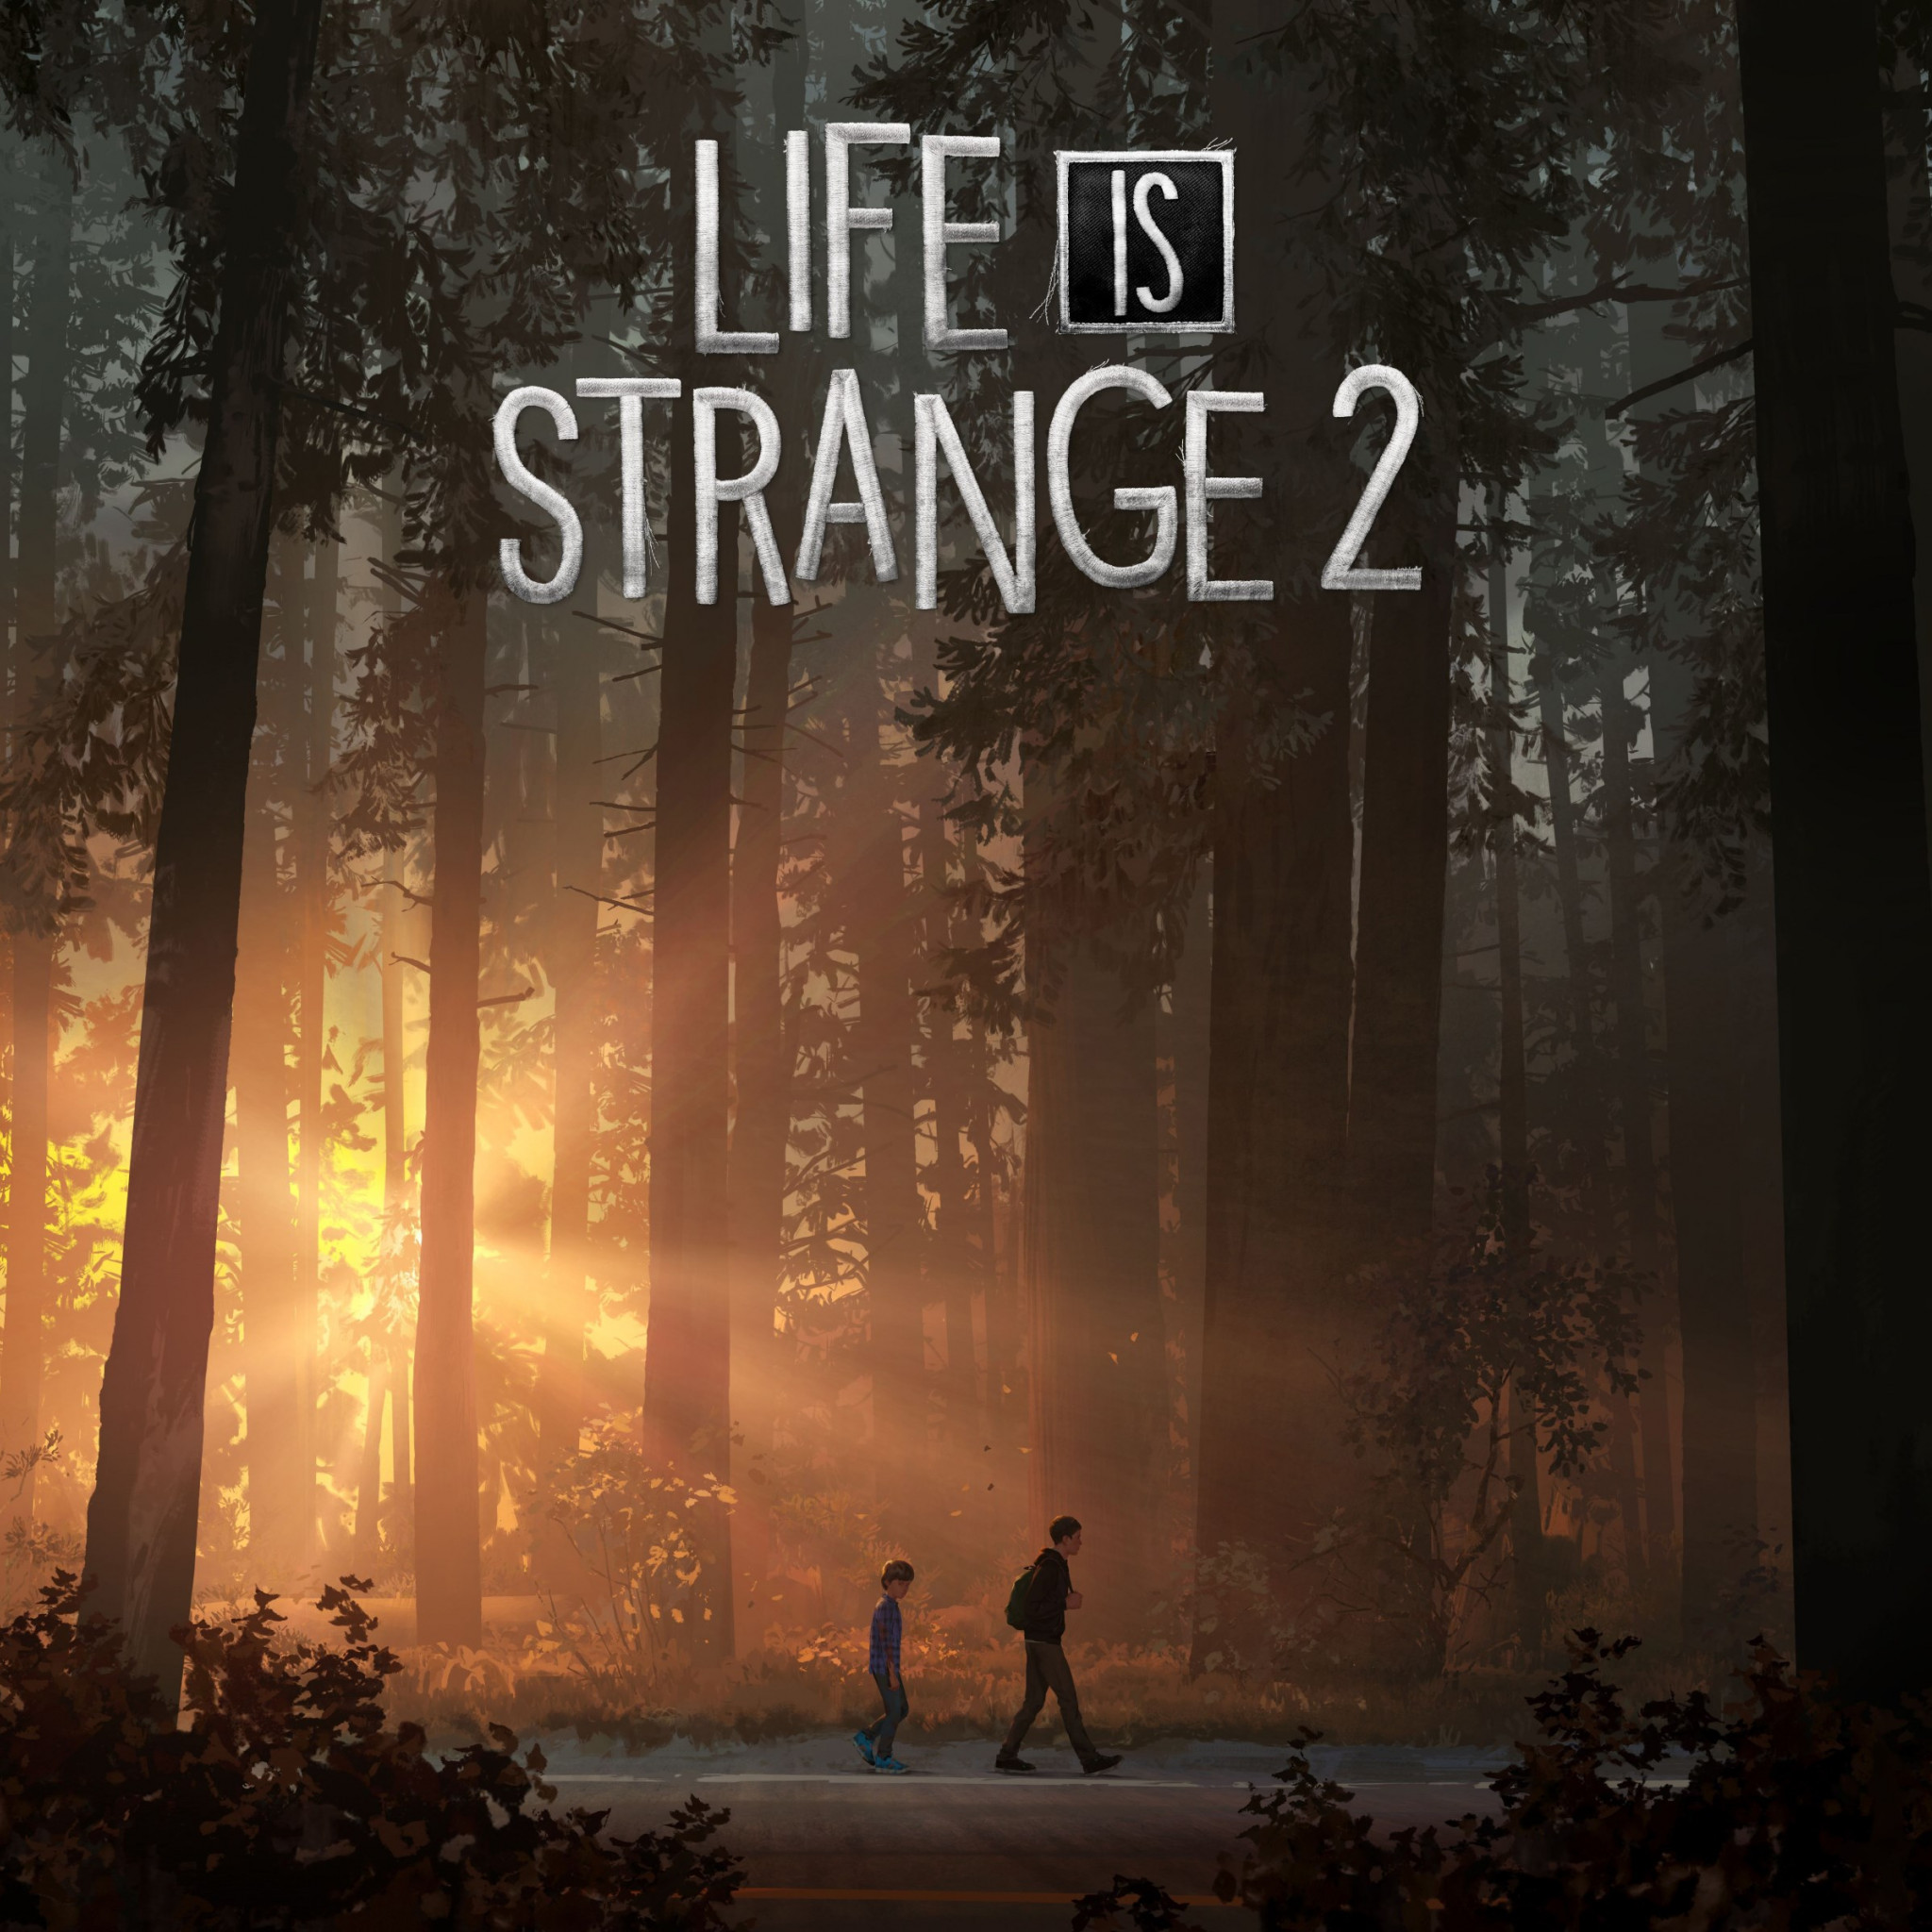 Life Is Strange 2 wallpaper 2048x2048